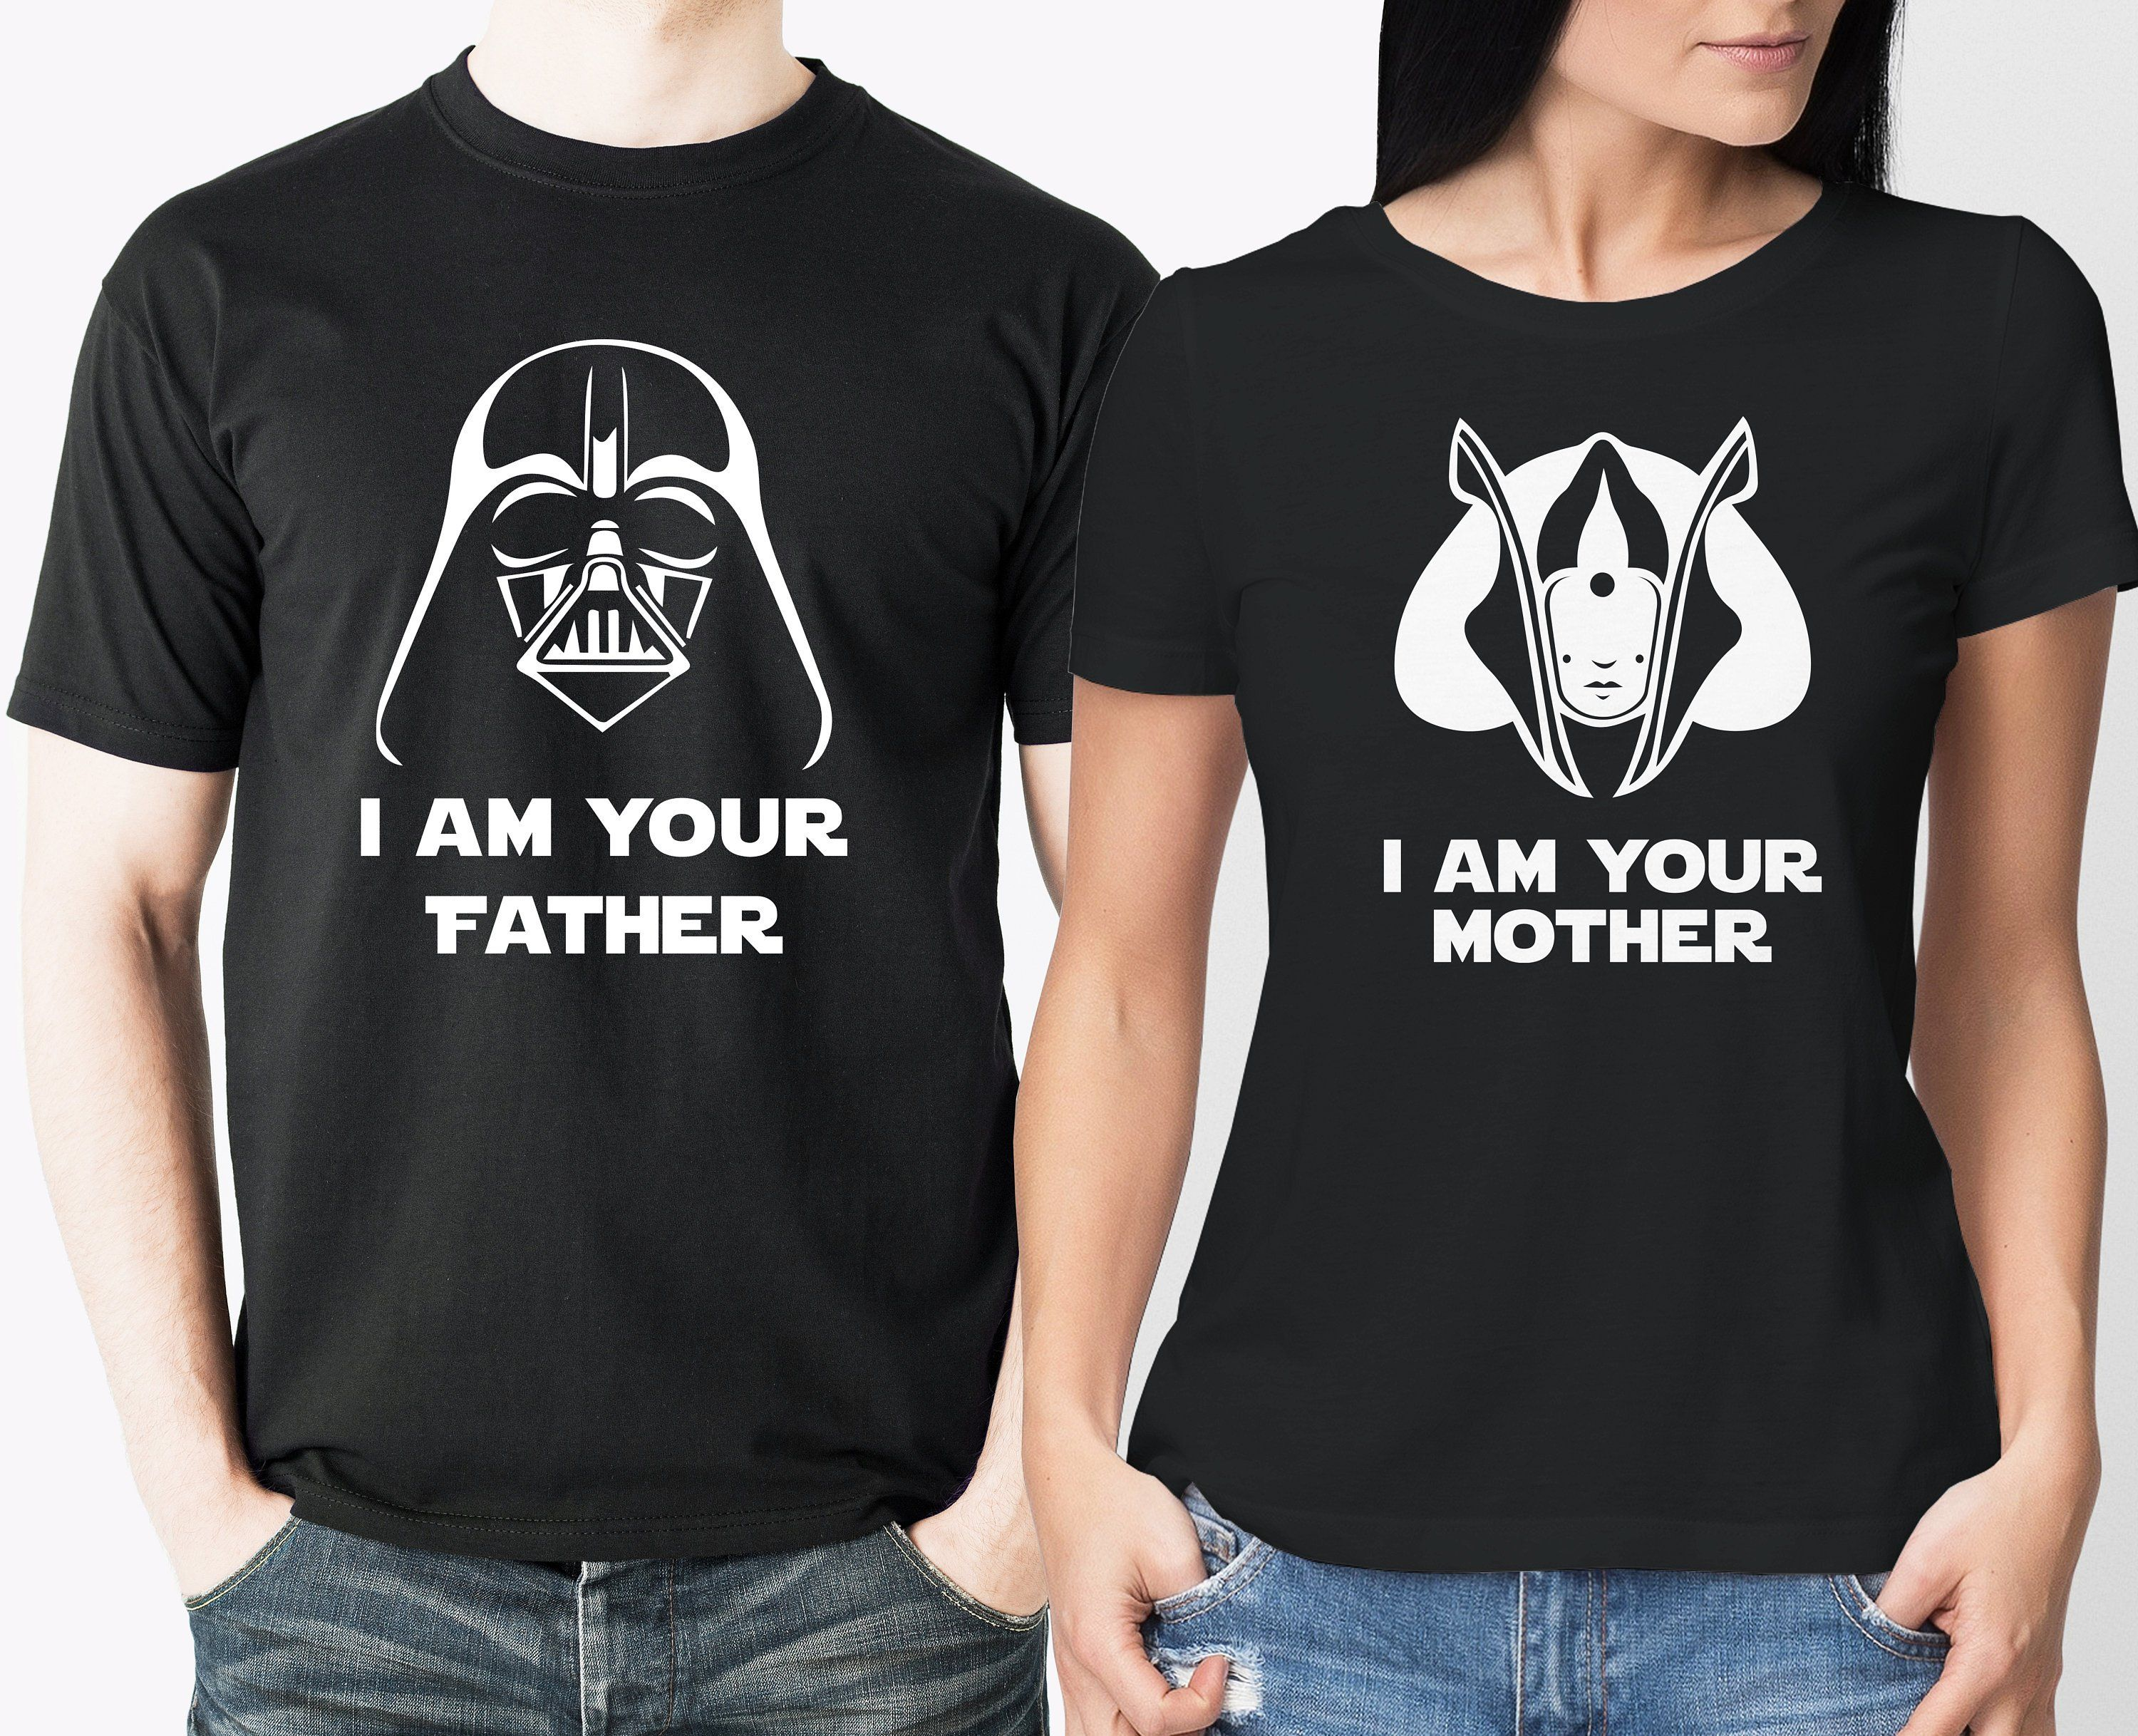 41a8d8e8f Darth Vader, I am your father and Padme, I am your mother t-shirts set. by  MumKnowsBabyGrows on Etsy